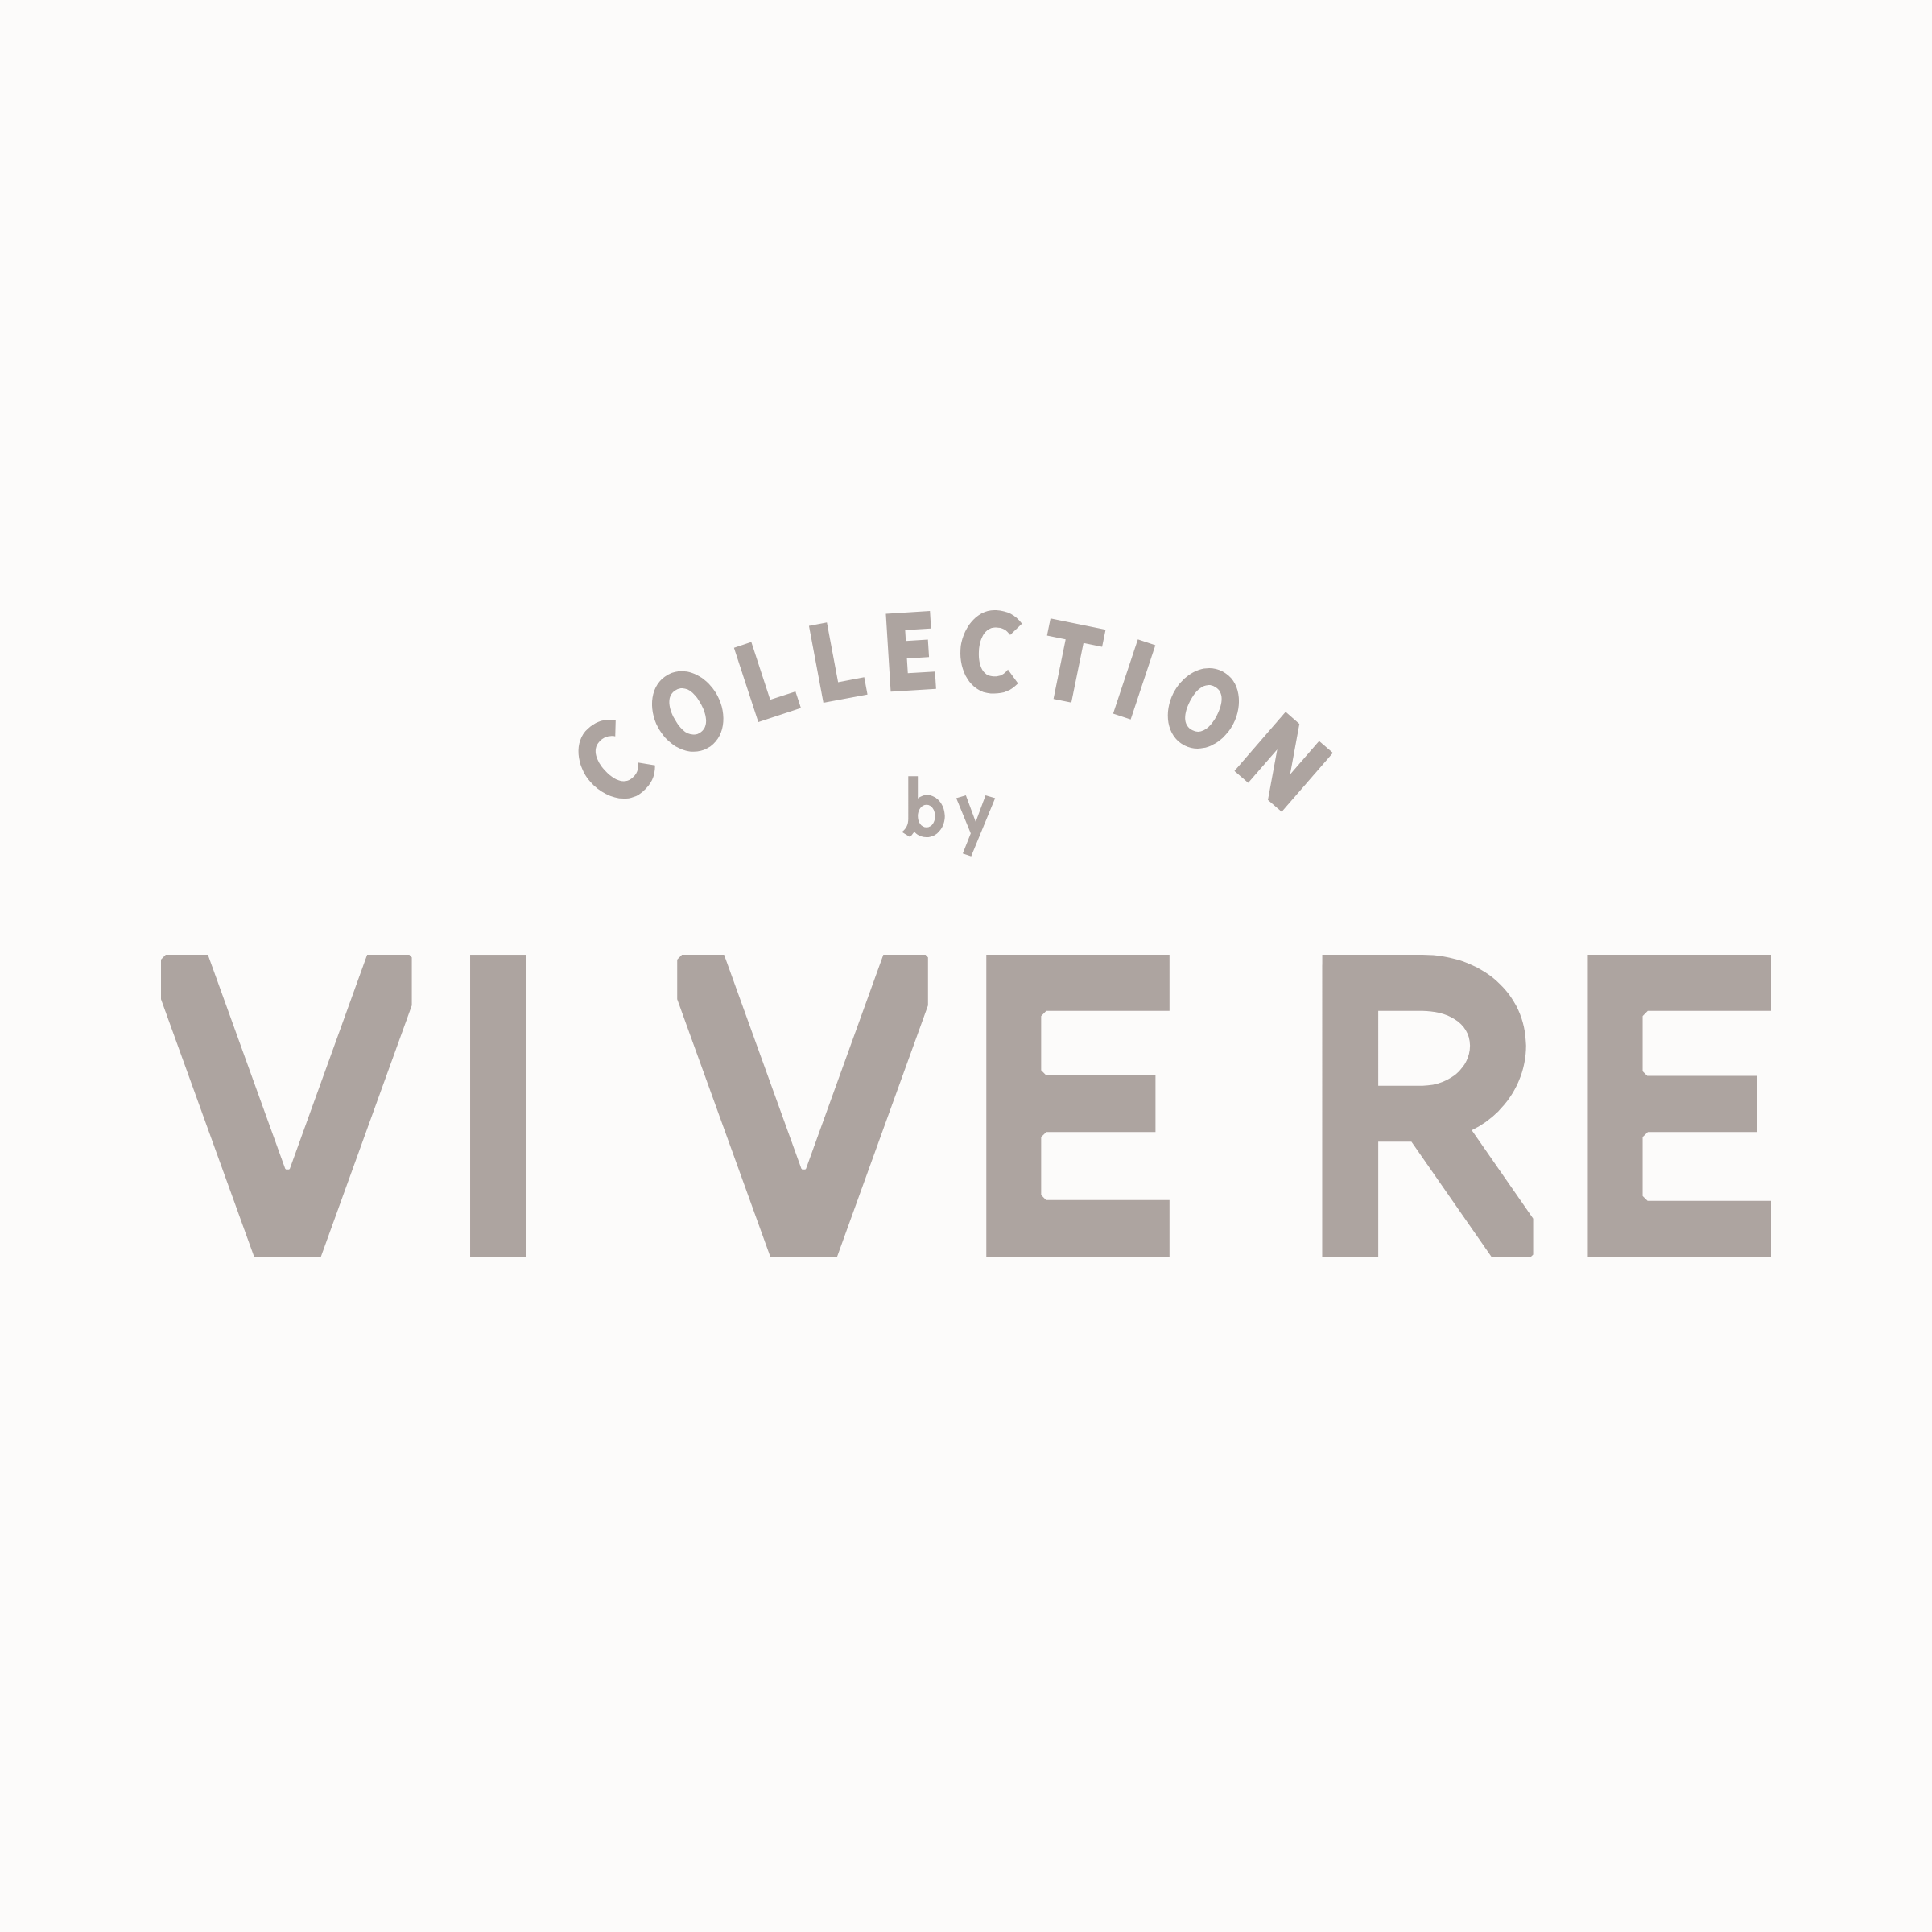 Vivere home furniture decor and gifts solution toko furniture home decor dan kado online